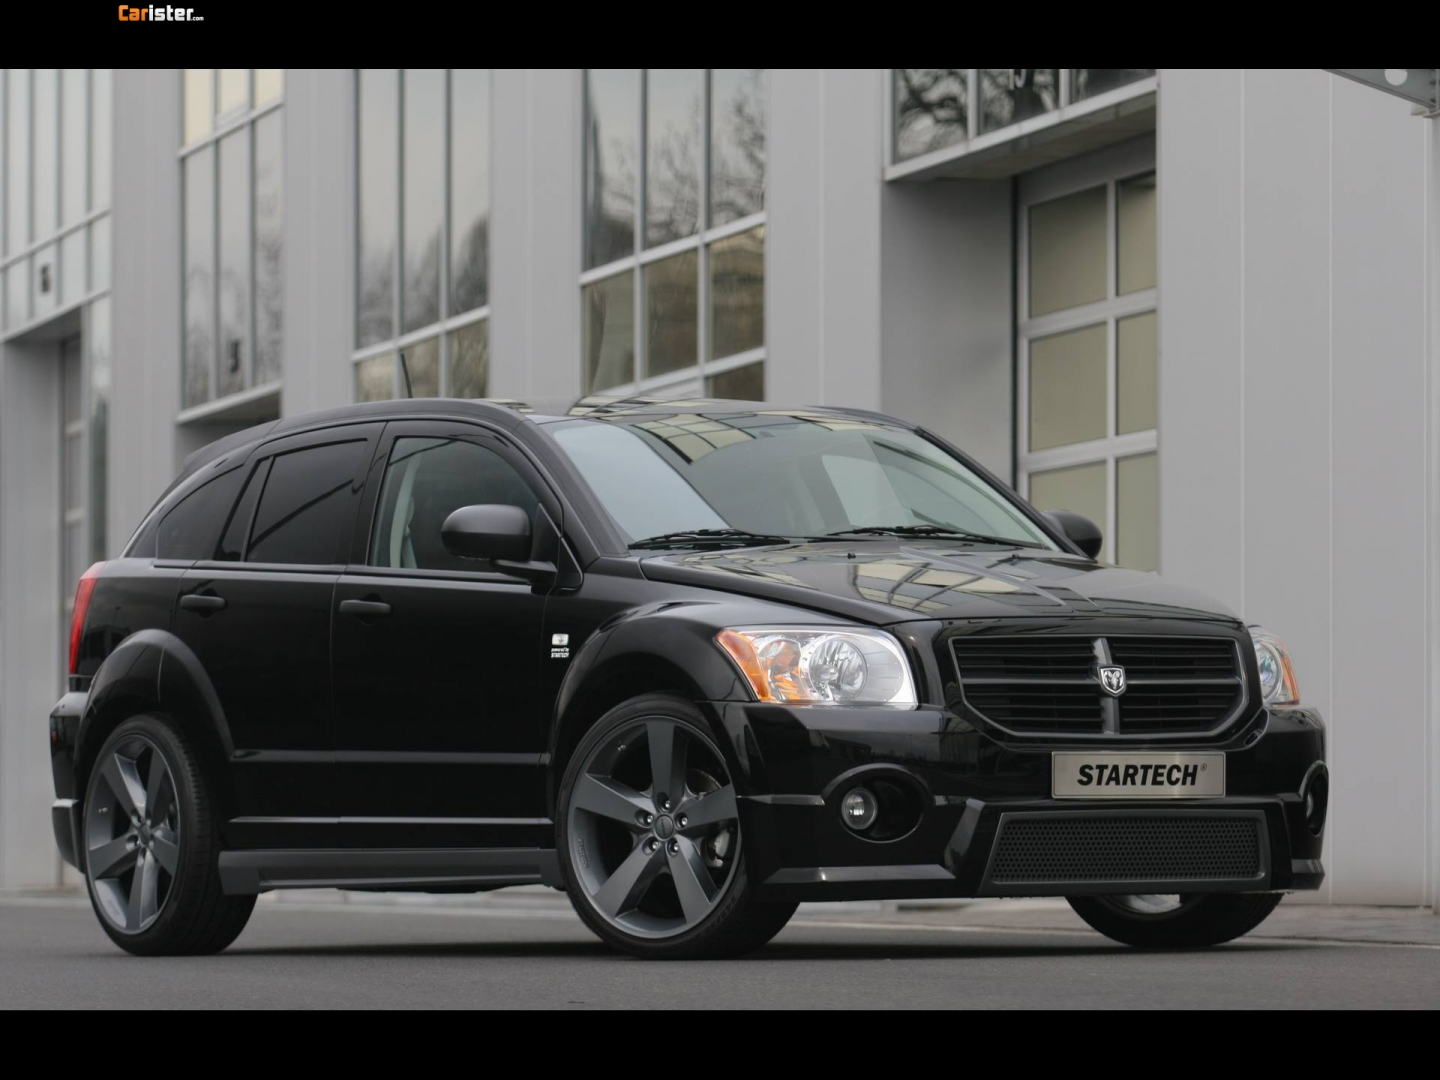 Startech Dodge Caliber 2007 - Photo 01 - Taille: 1440x1080